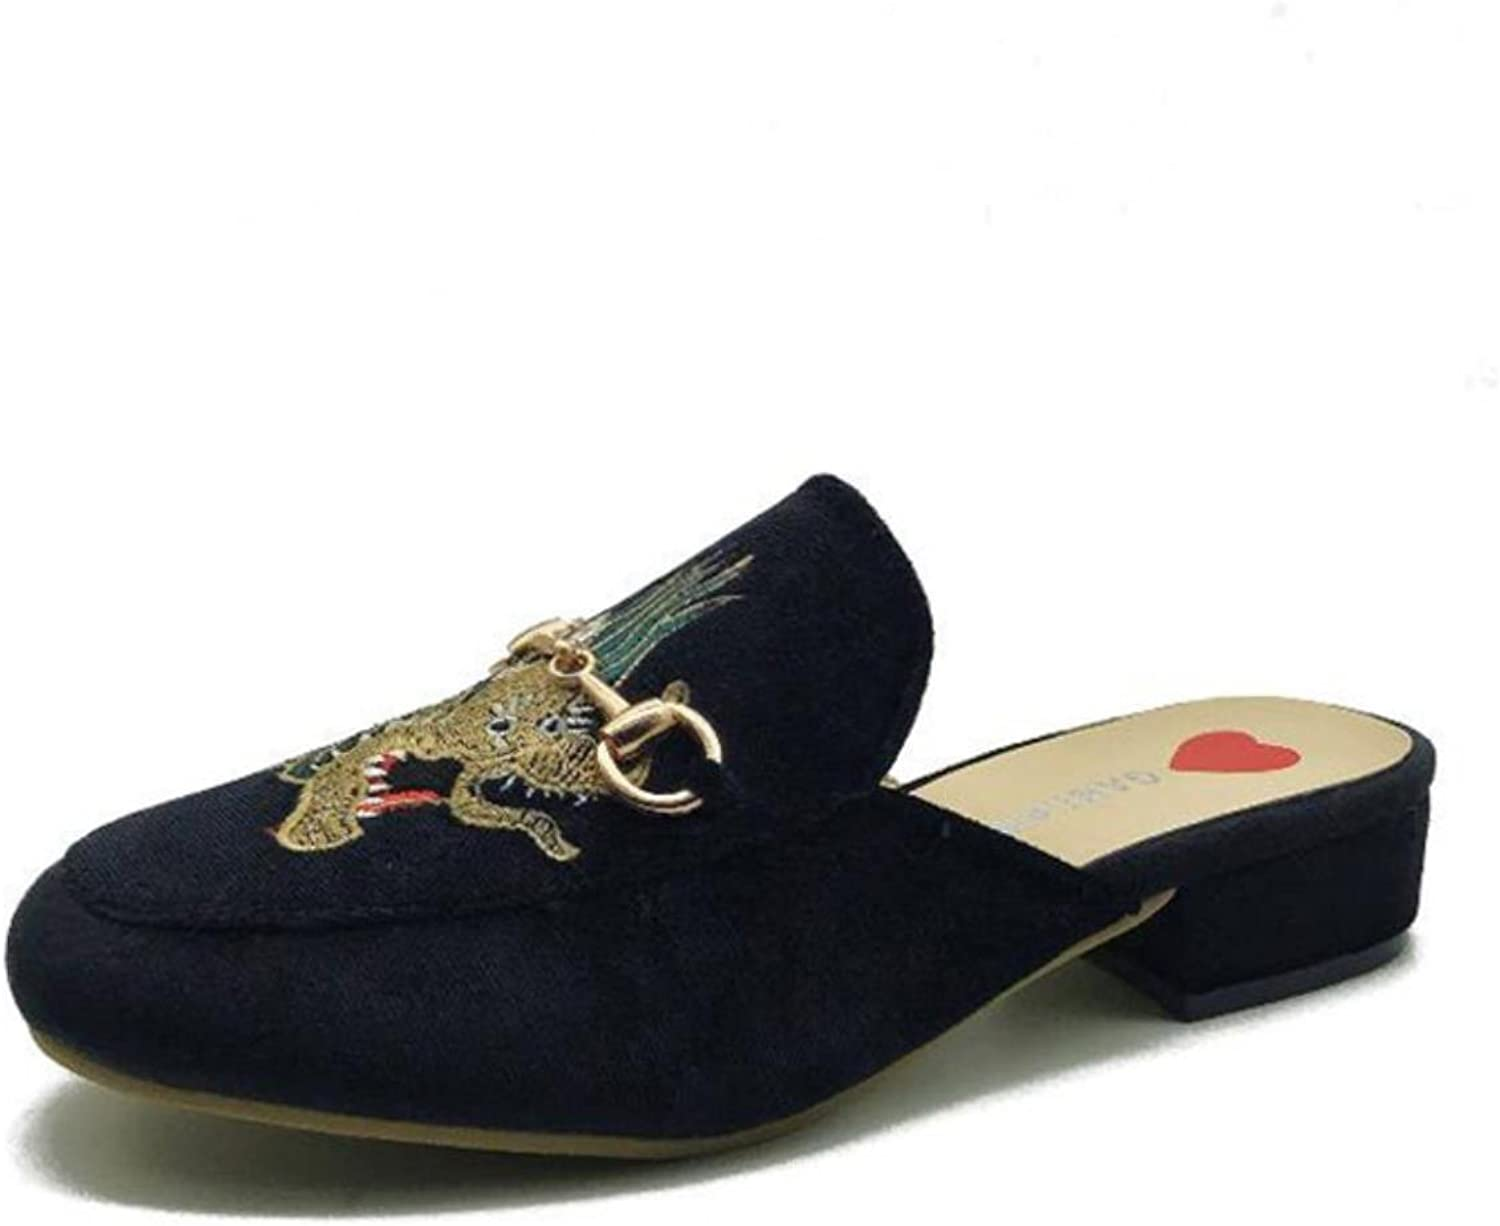 Women39;s Slippers Leather Embroidered Party With Home Slippers Casual shoes